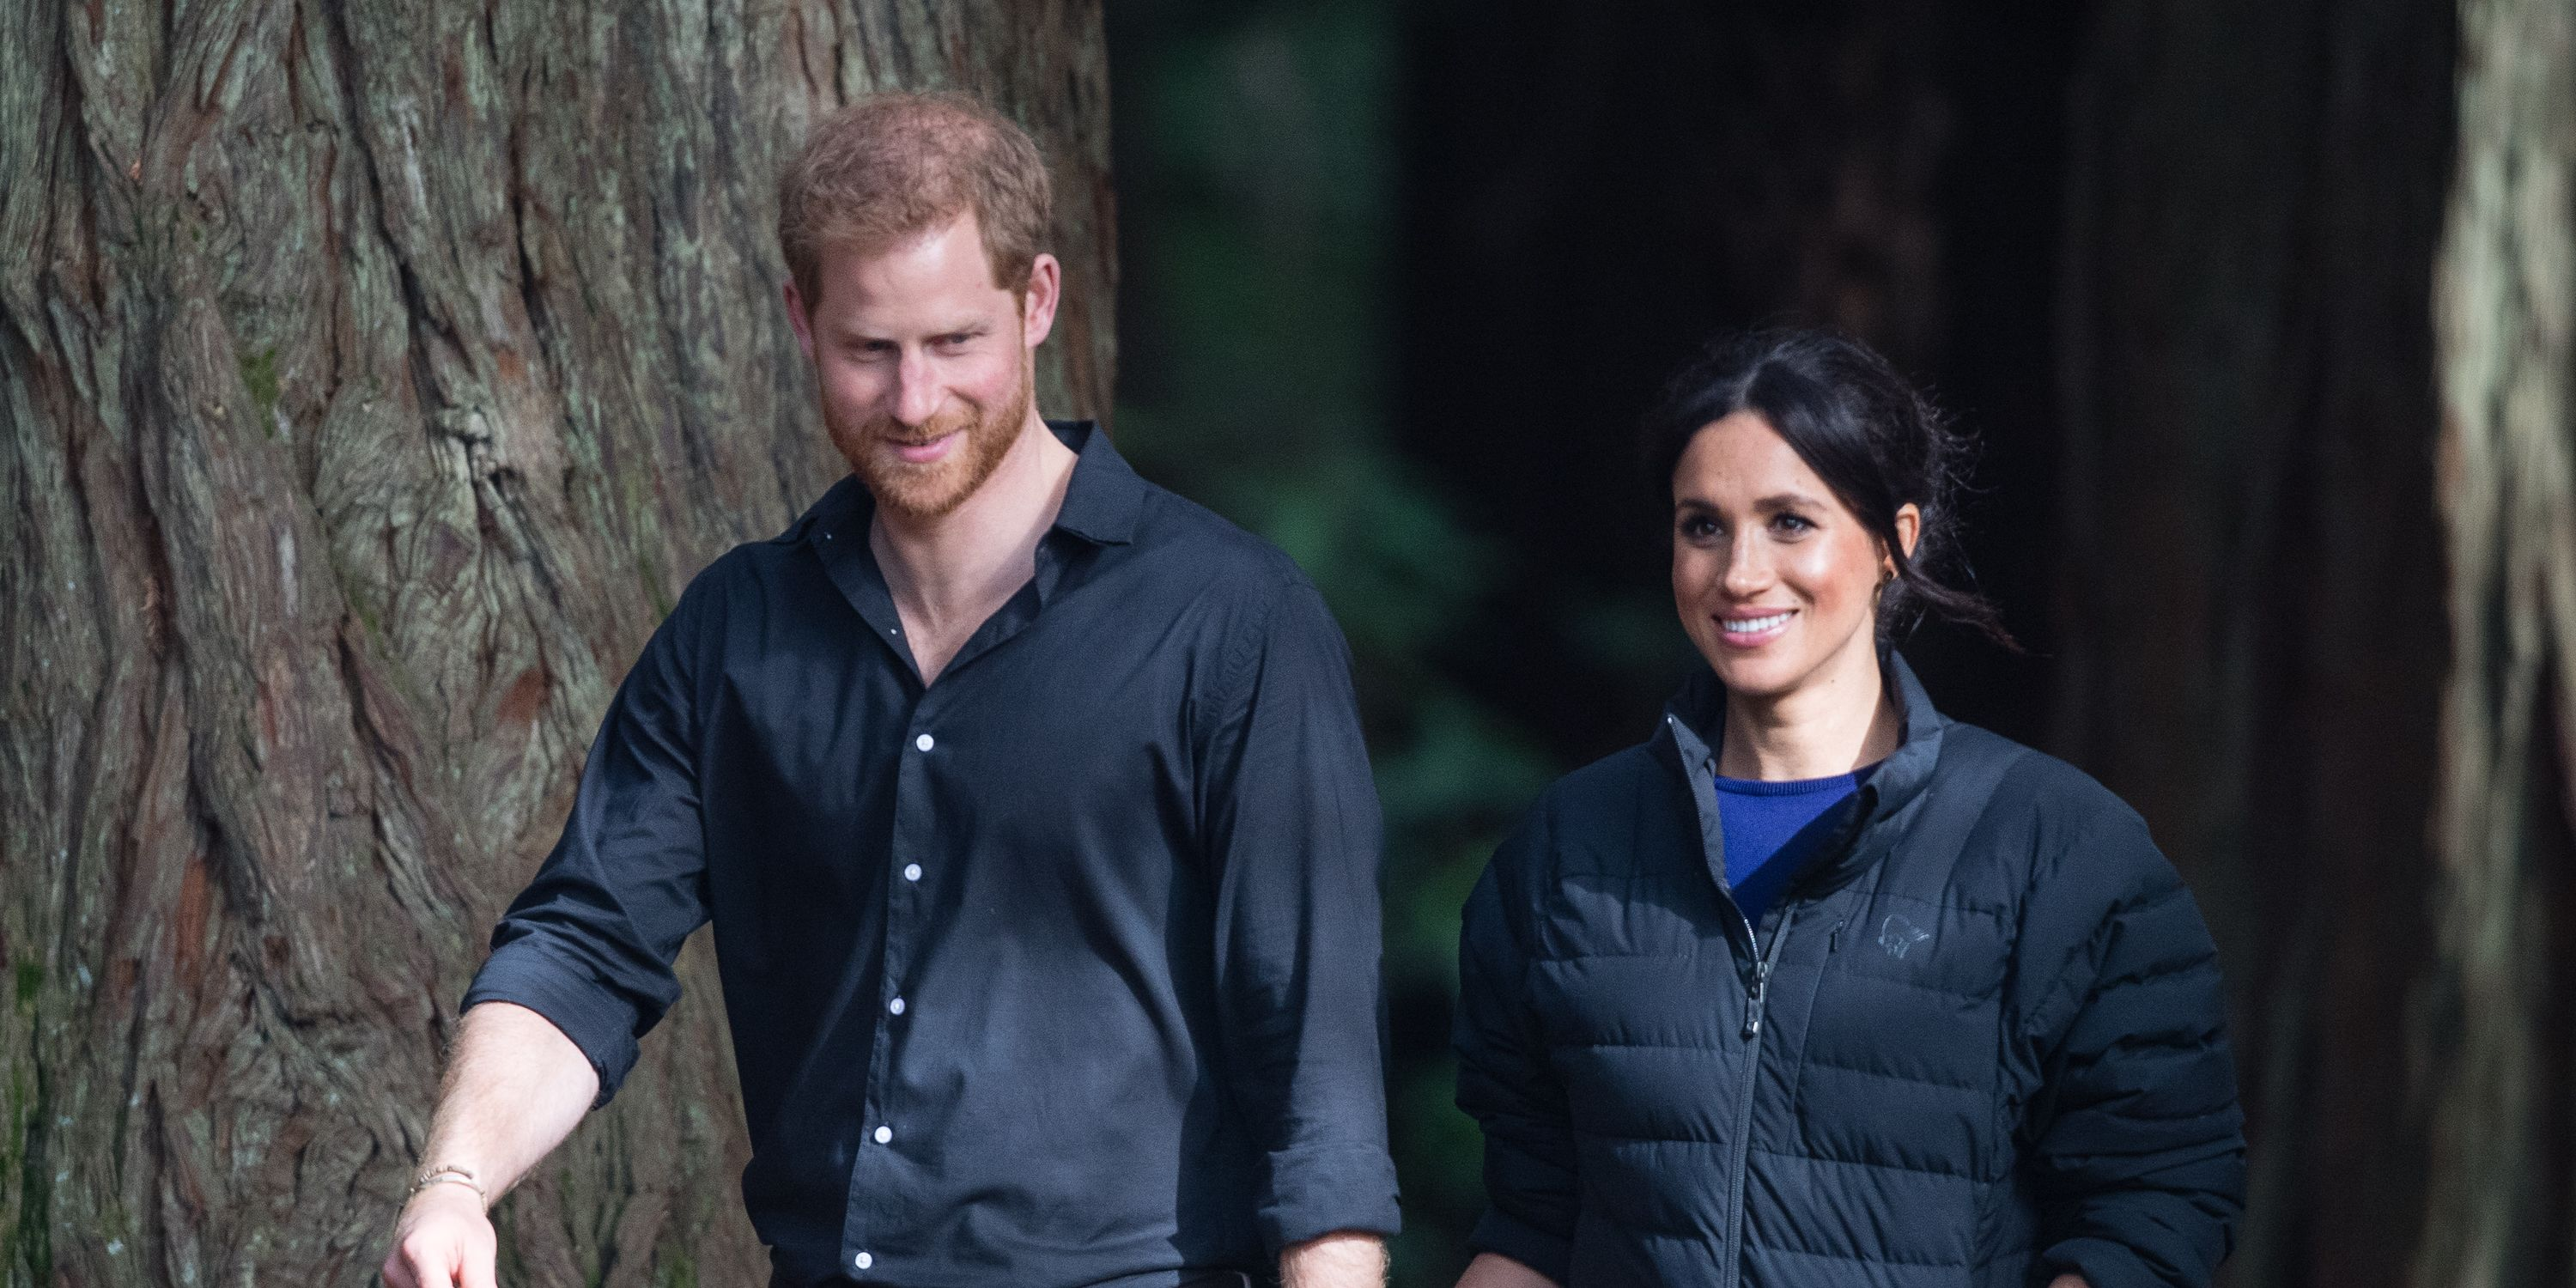 Harry e Meghan al Frogmore House Cottage